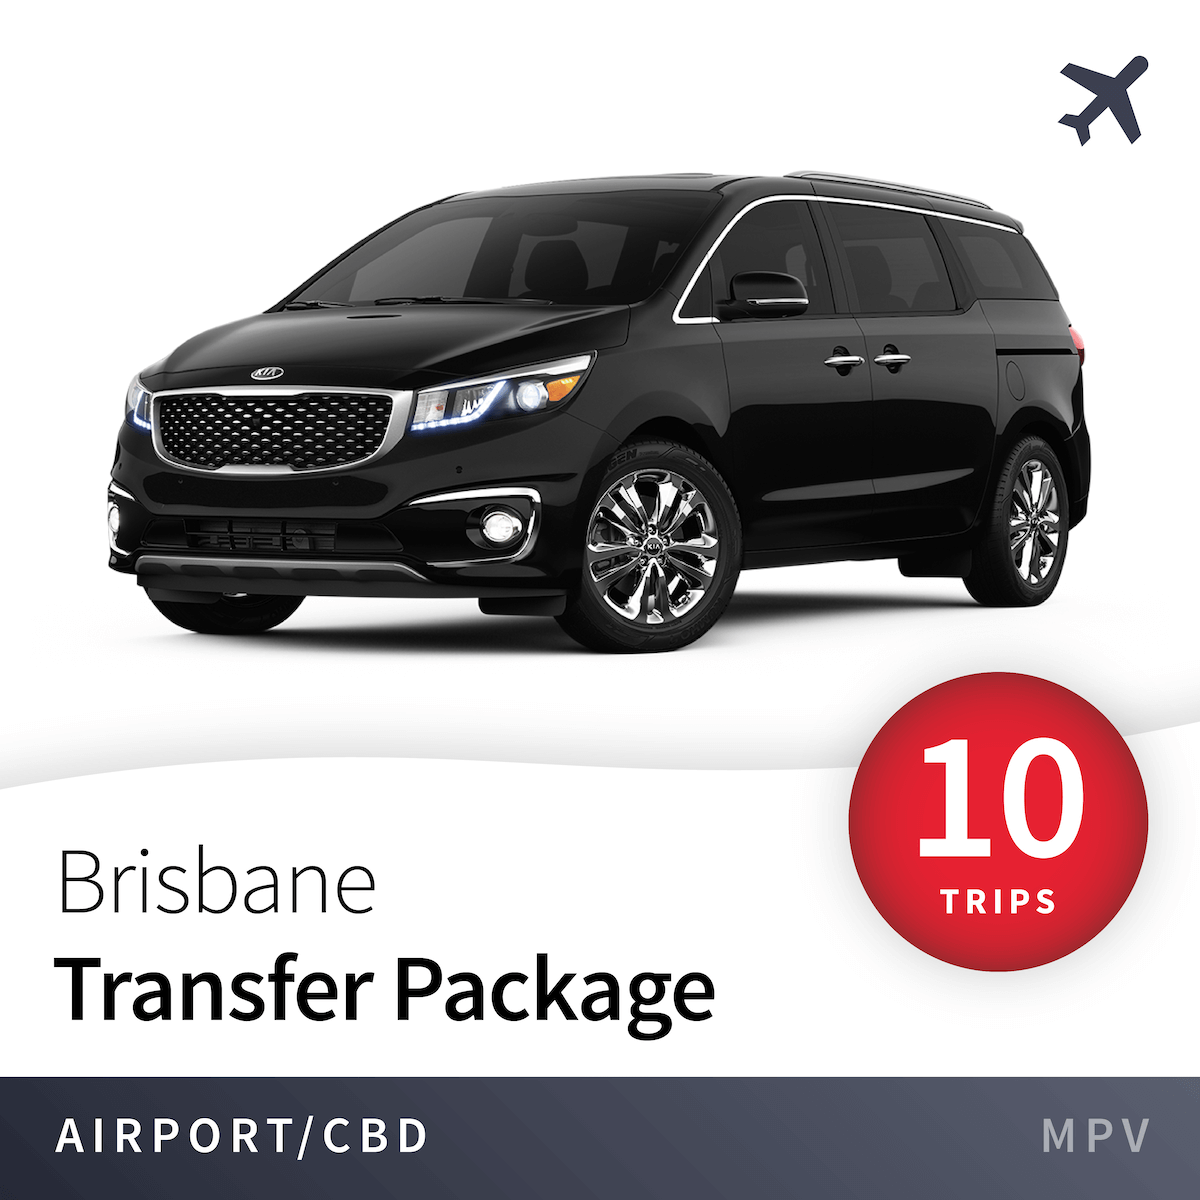 Brisbane Airport Transfer Package - MPV (10 Trips) 2